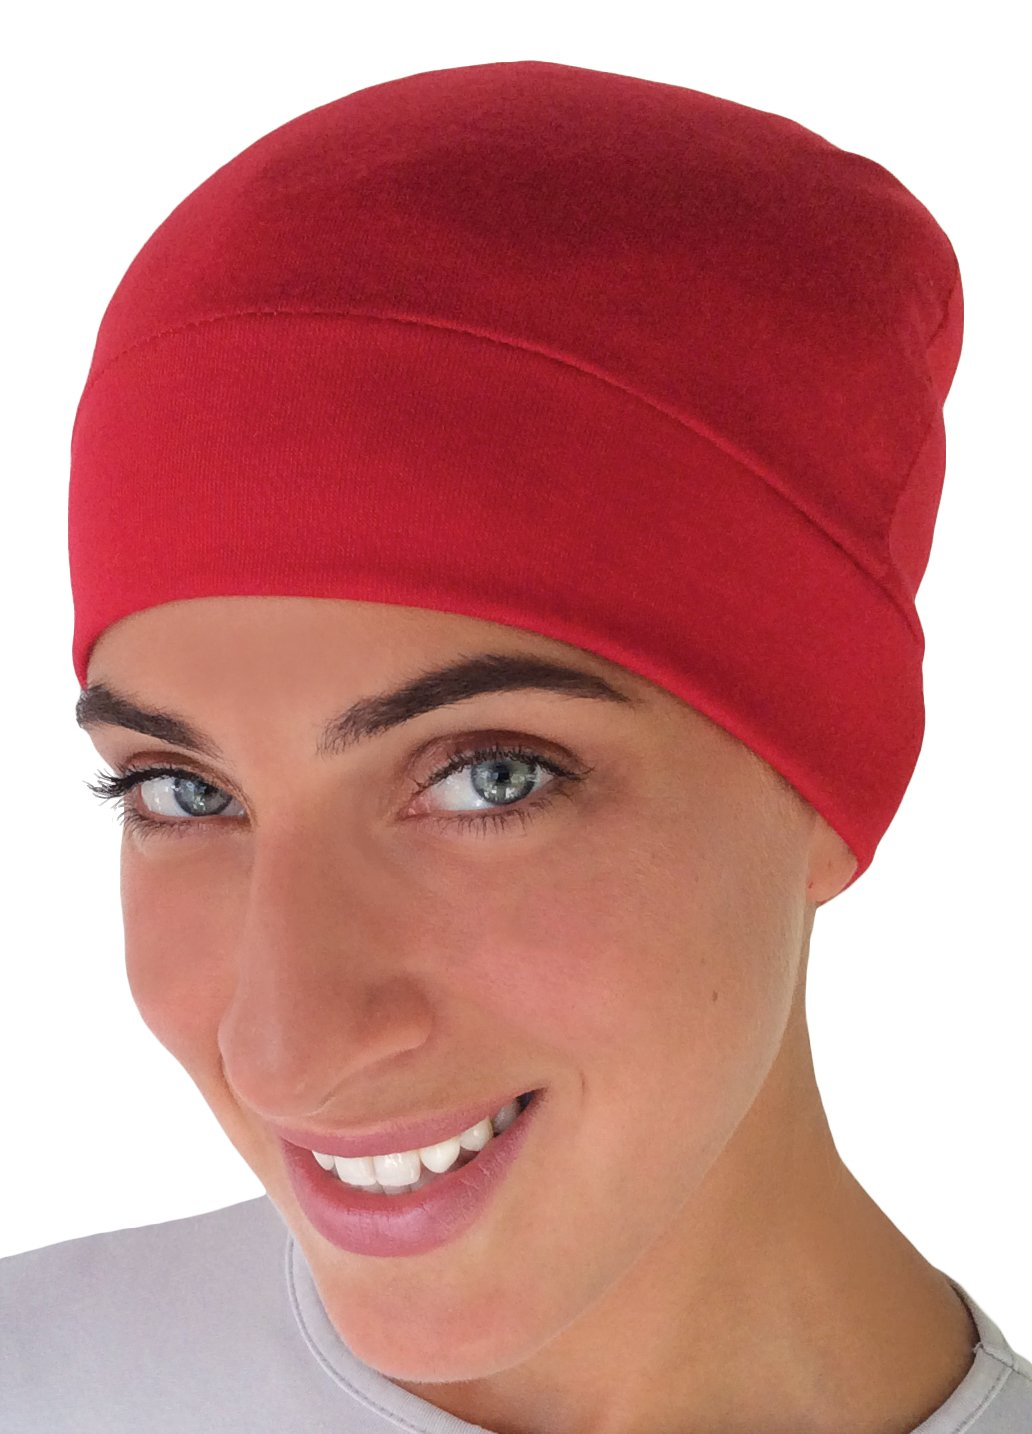 Soft Comfy Sleep and Chemo Cap, Hat Liner Uptown Girl Headwear